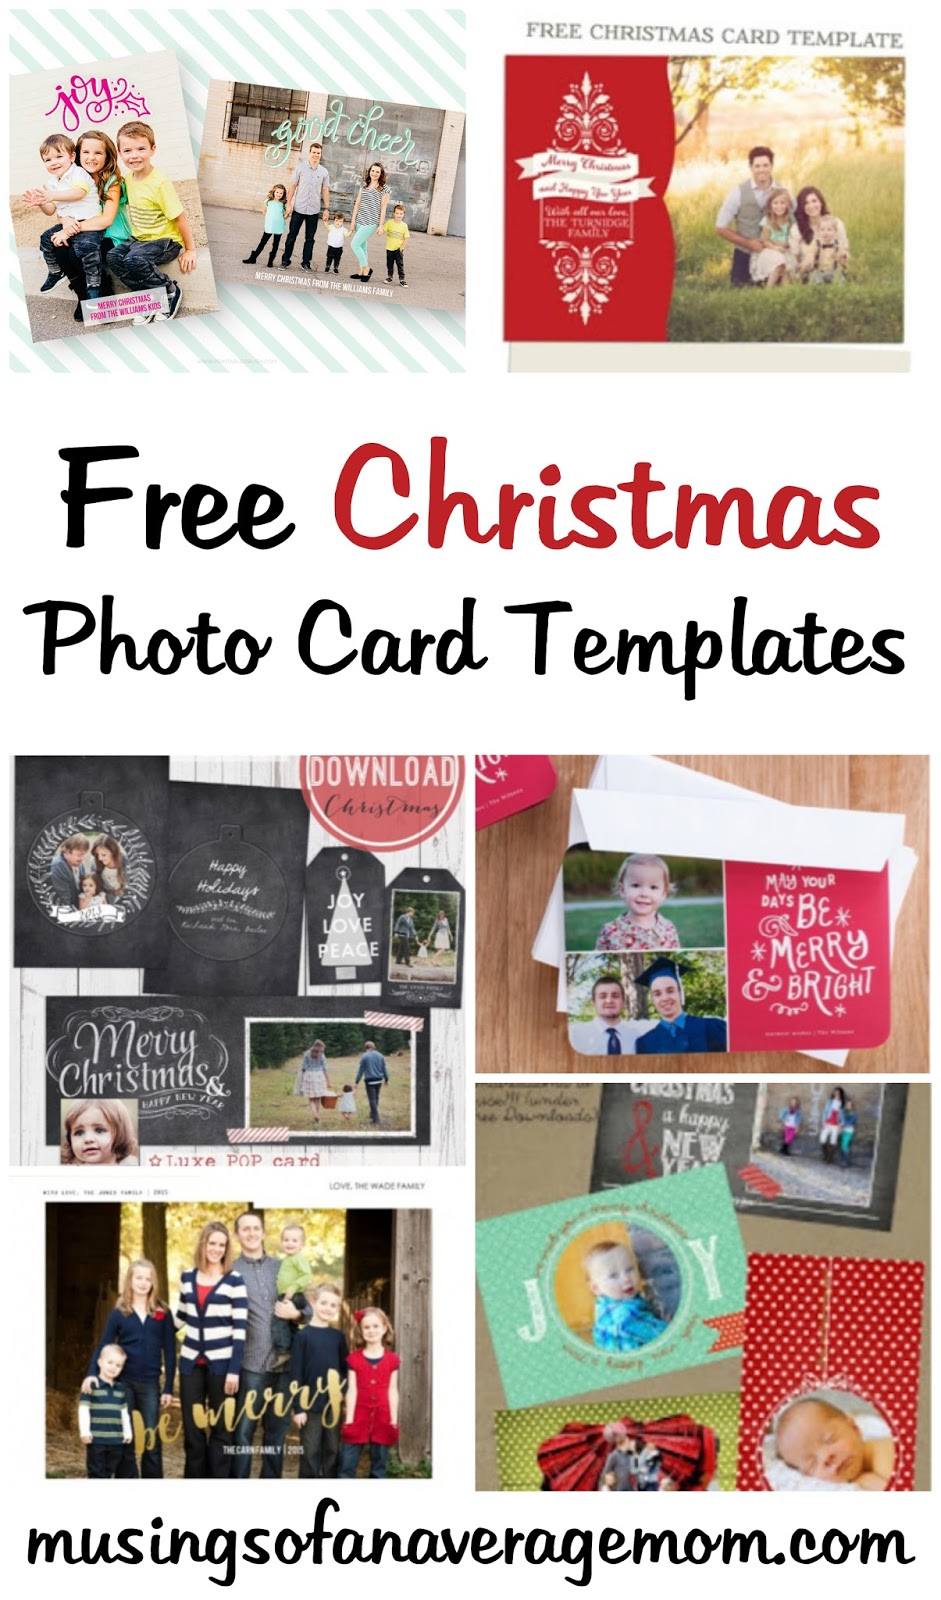 Free Christmas Card Templates.Musings Of An Average Mom Free Photo Christmas Card Templates